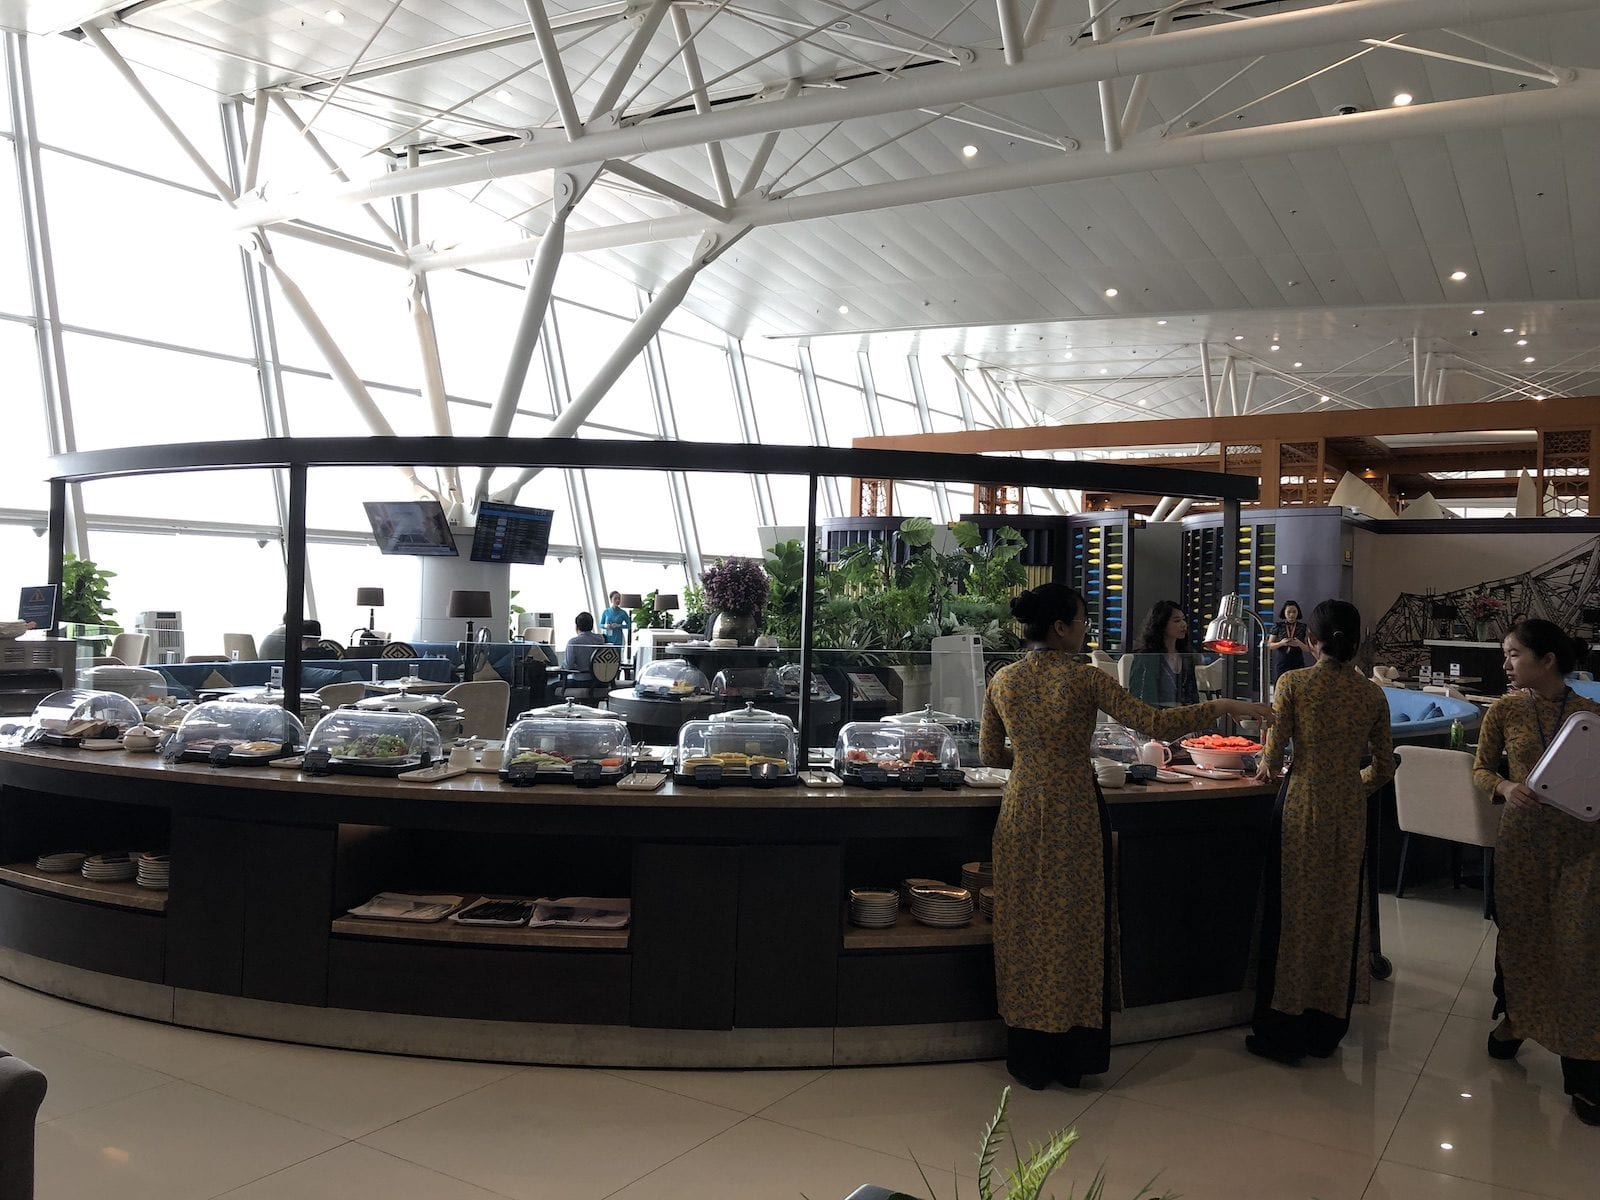 Dining choose at Sông Hồng Business Lounge, Noi Bai International Airport